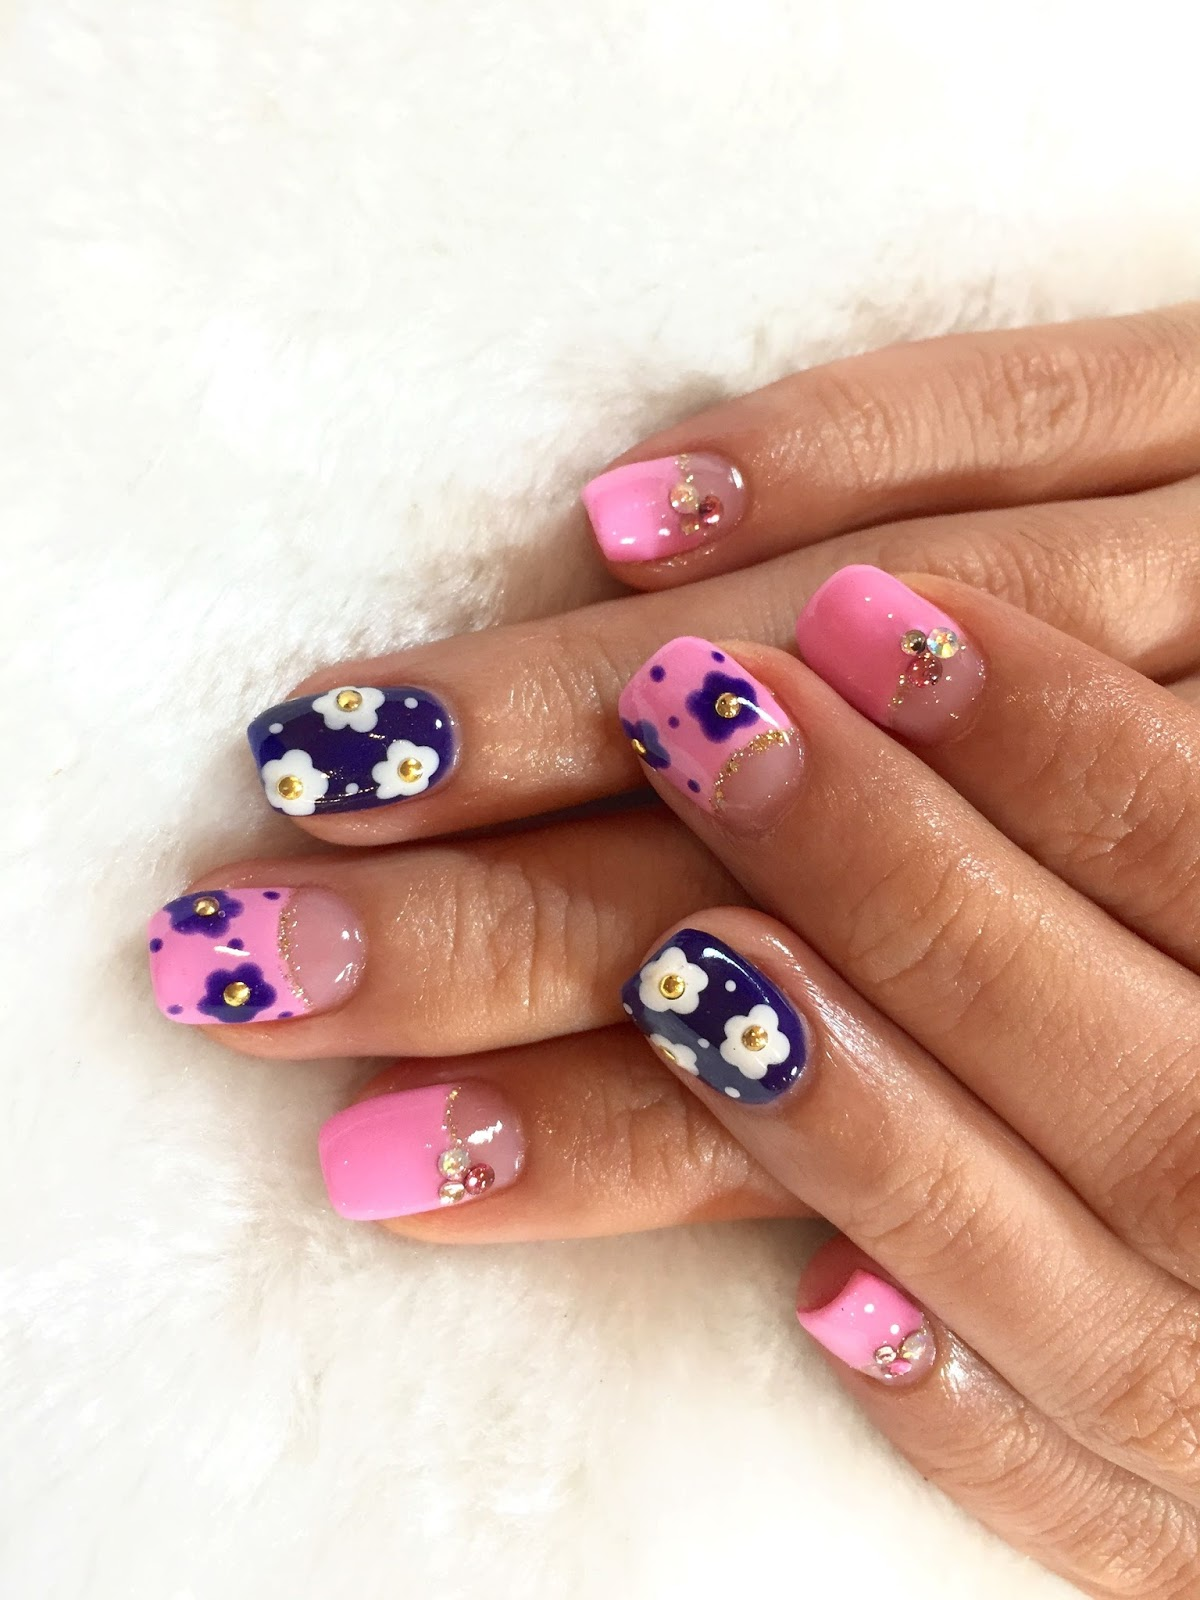 Gelish Manicure and Pedicure at Vanity by Nailz Treats on 20th Jan ...